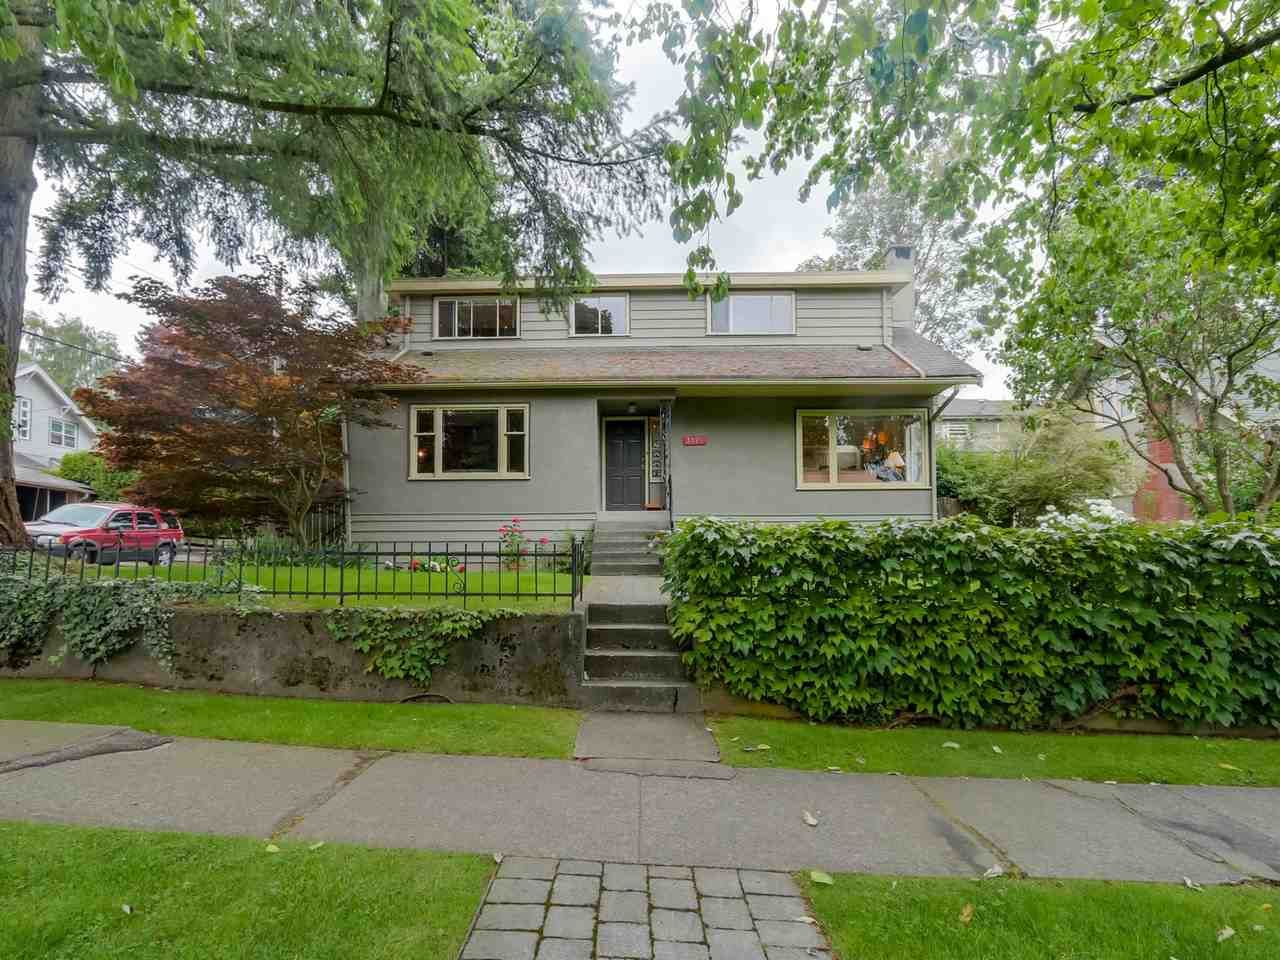 Main Photo: 3325 HIGHBURY Street in Vancouver: Dunbar House for sale (Vancouver West)  : MLS®# R2106208